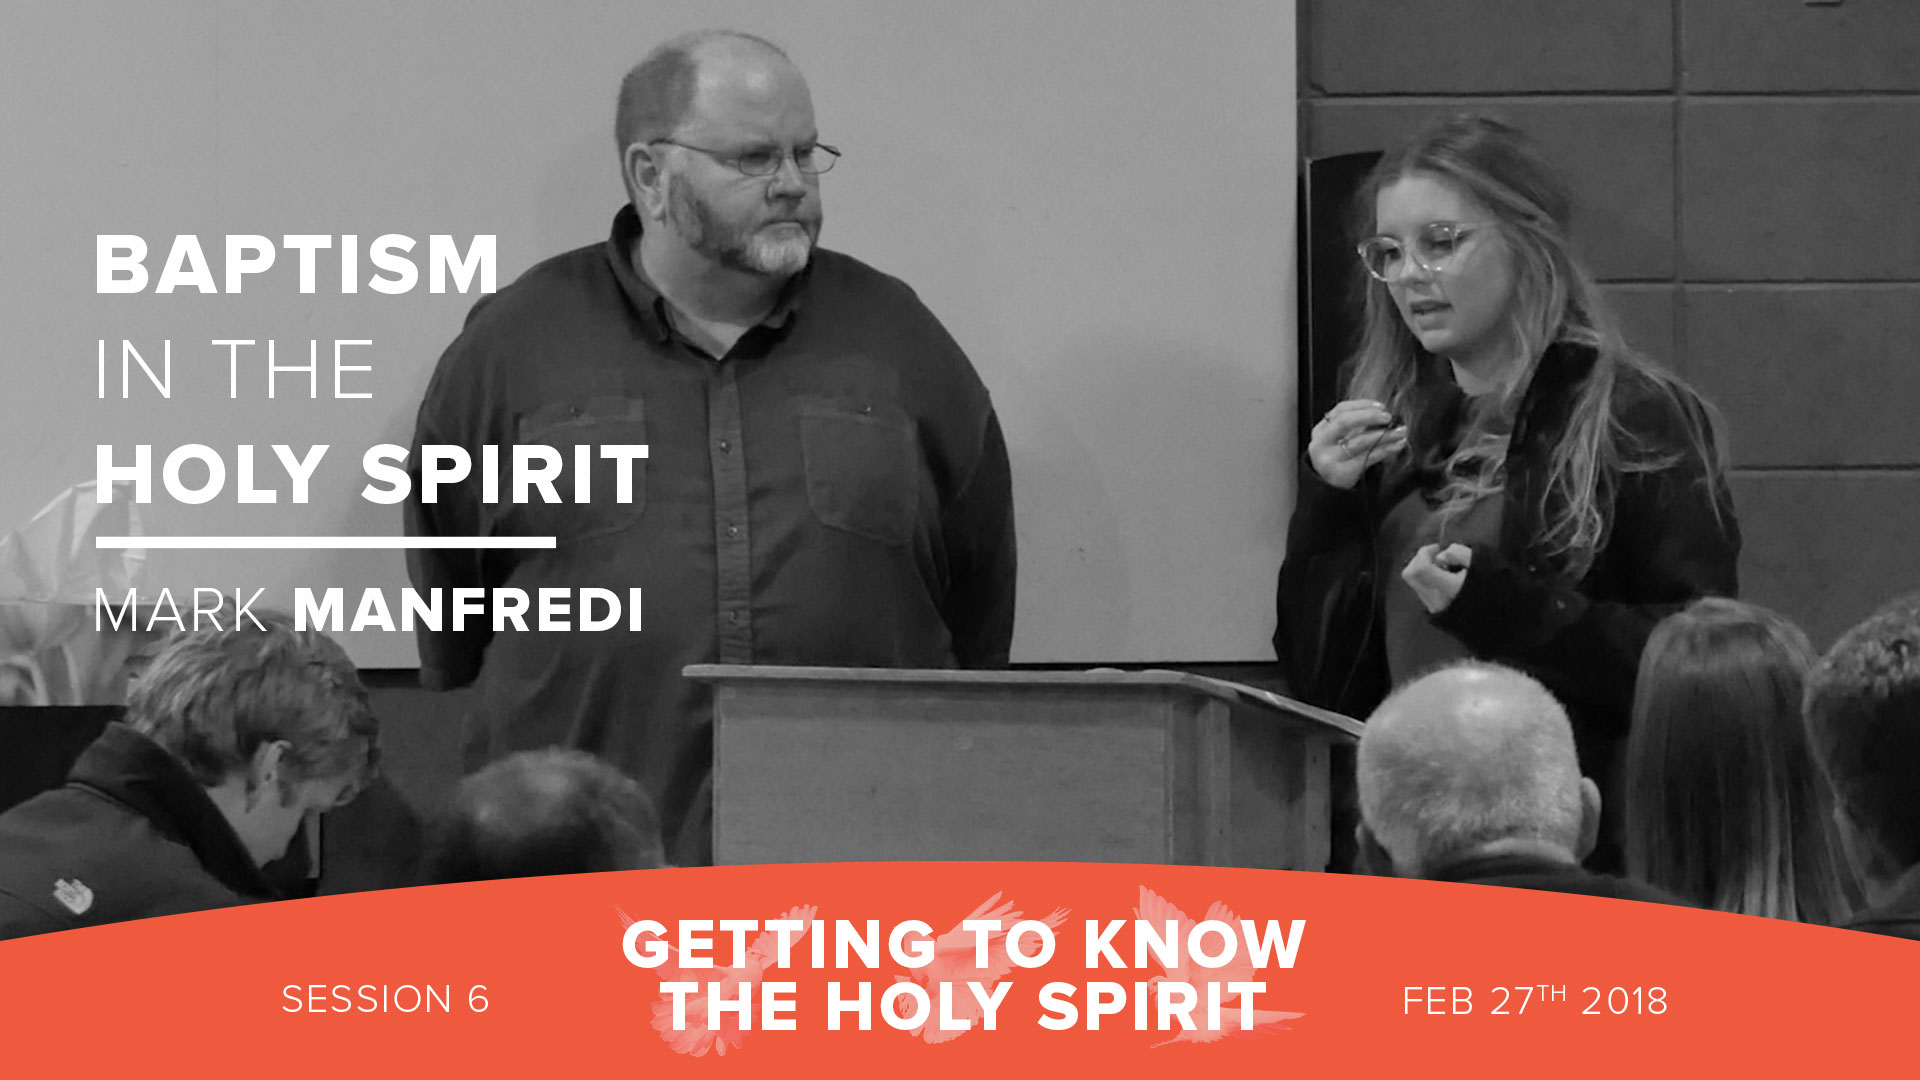 Session 6 - Baptism in the Holy Spirit